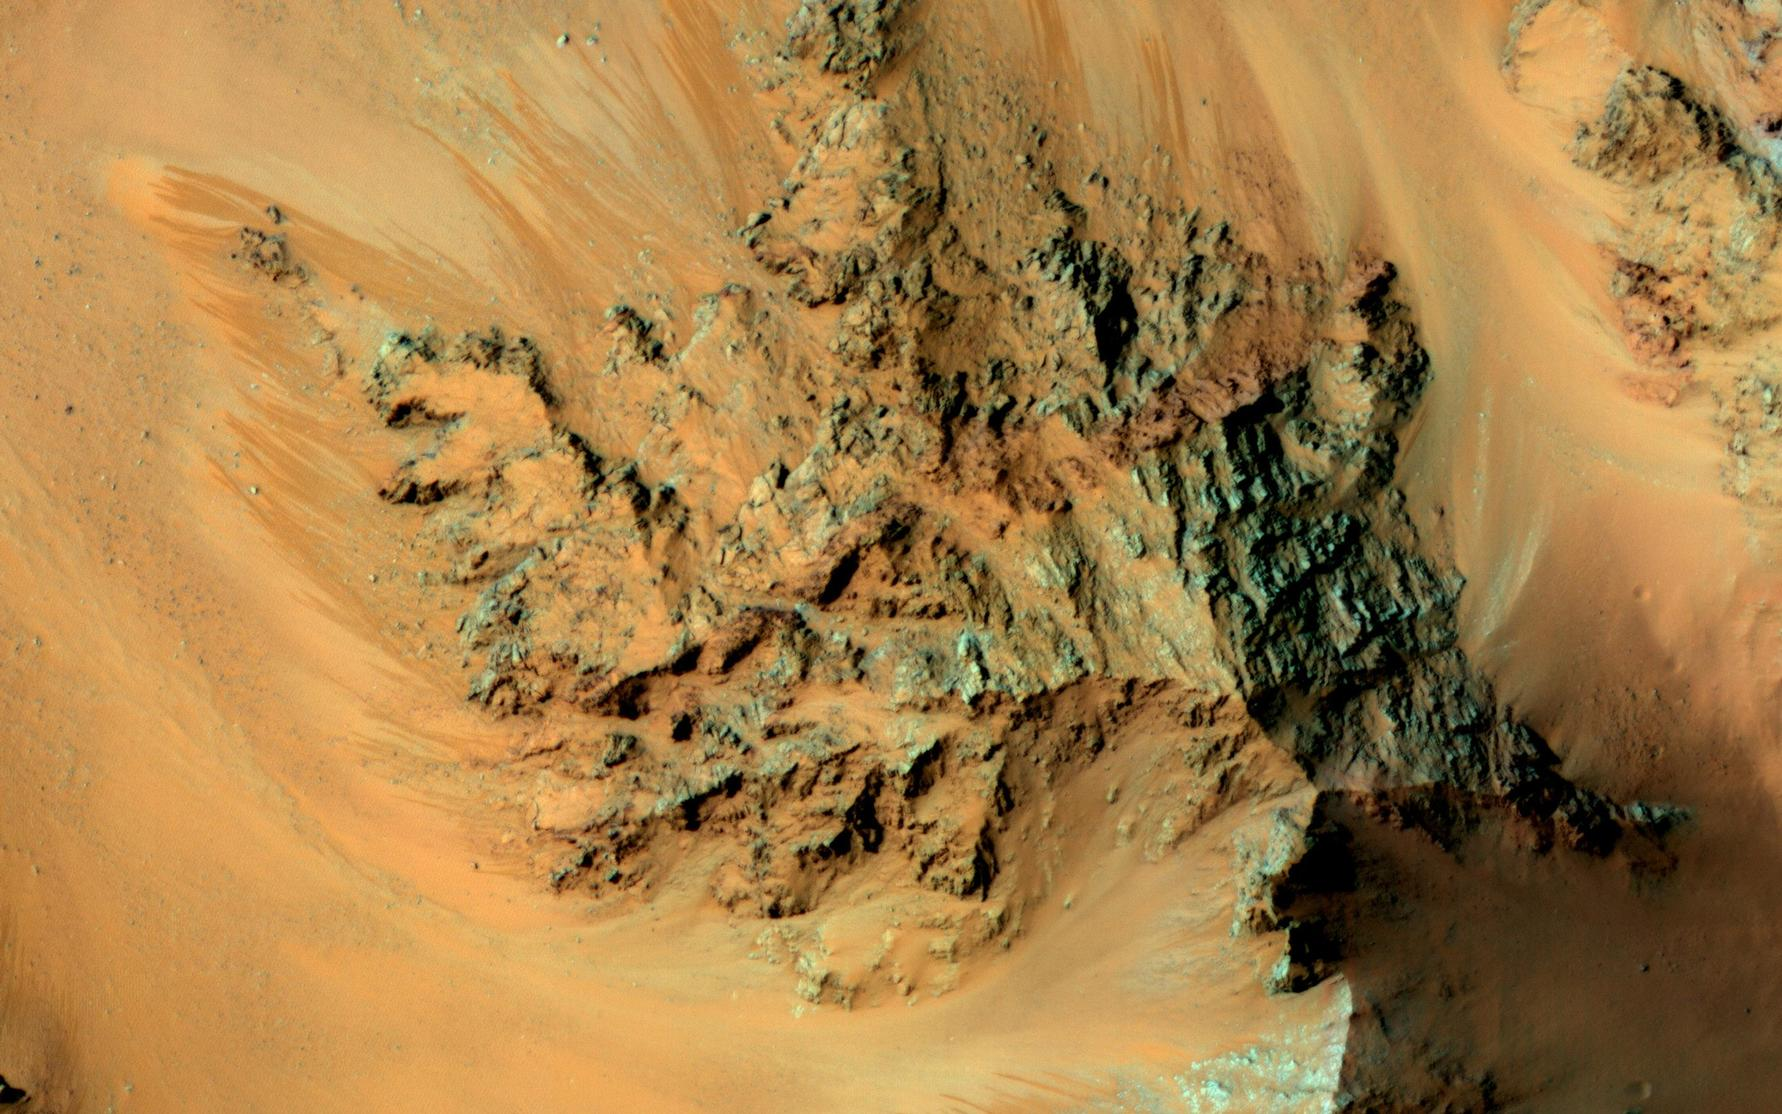 Recurring slope lineae (RSL) are active flows on warm Martian slopes that might be caused by seeping water.